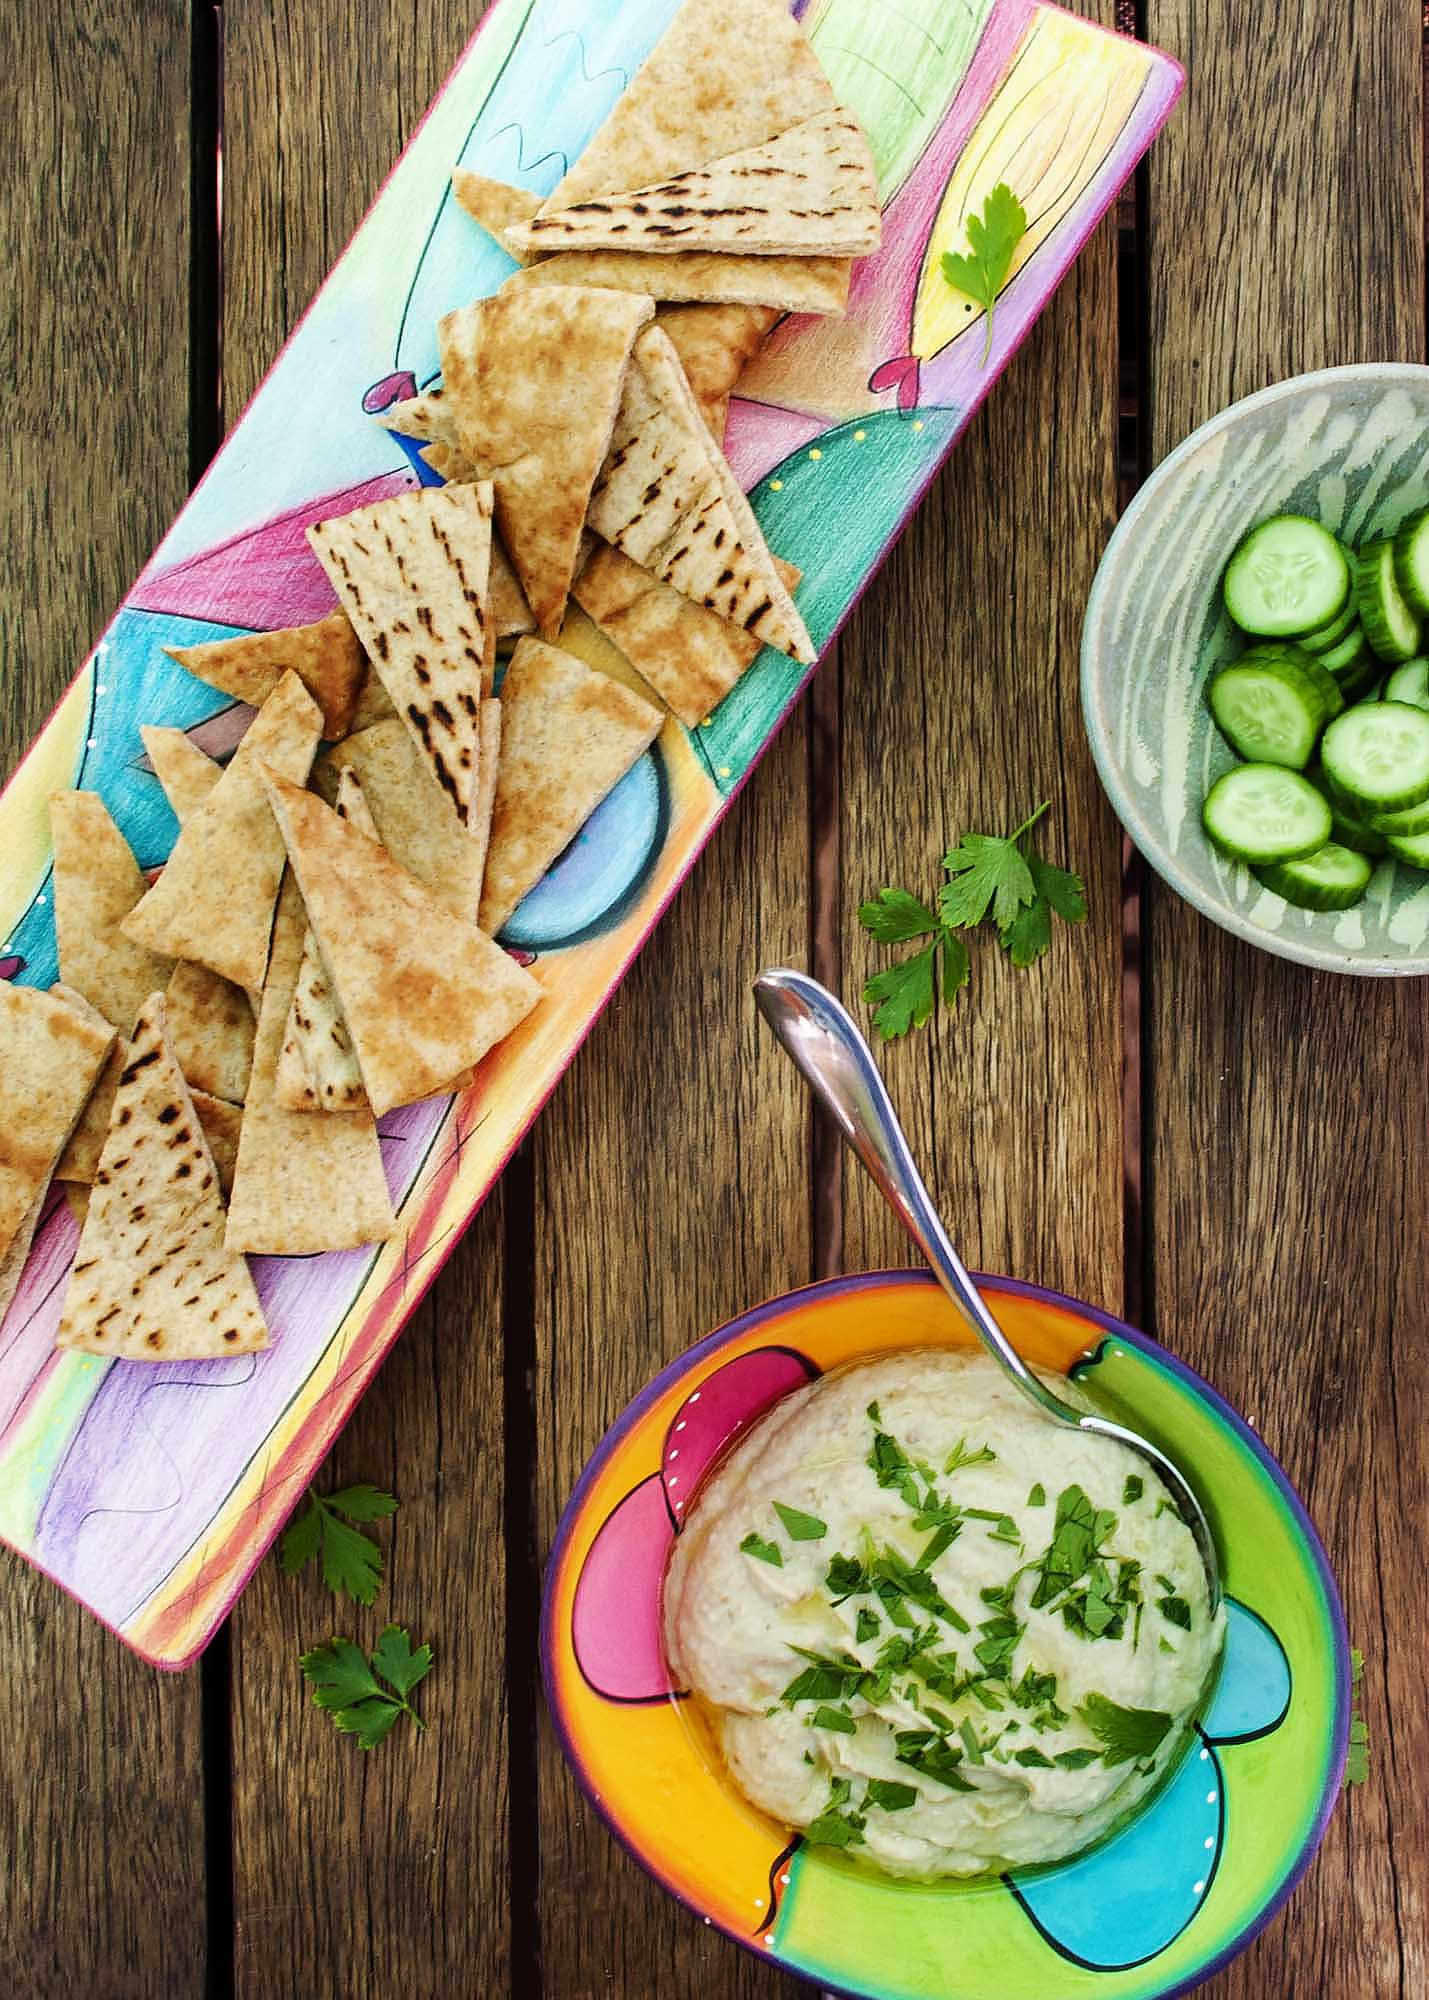 Baba Ghanoush - This creamy, smoky eggplant dip lightened with a bit of mayonnaise will have you going back for more. | justalittlebitofbacon.com